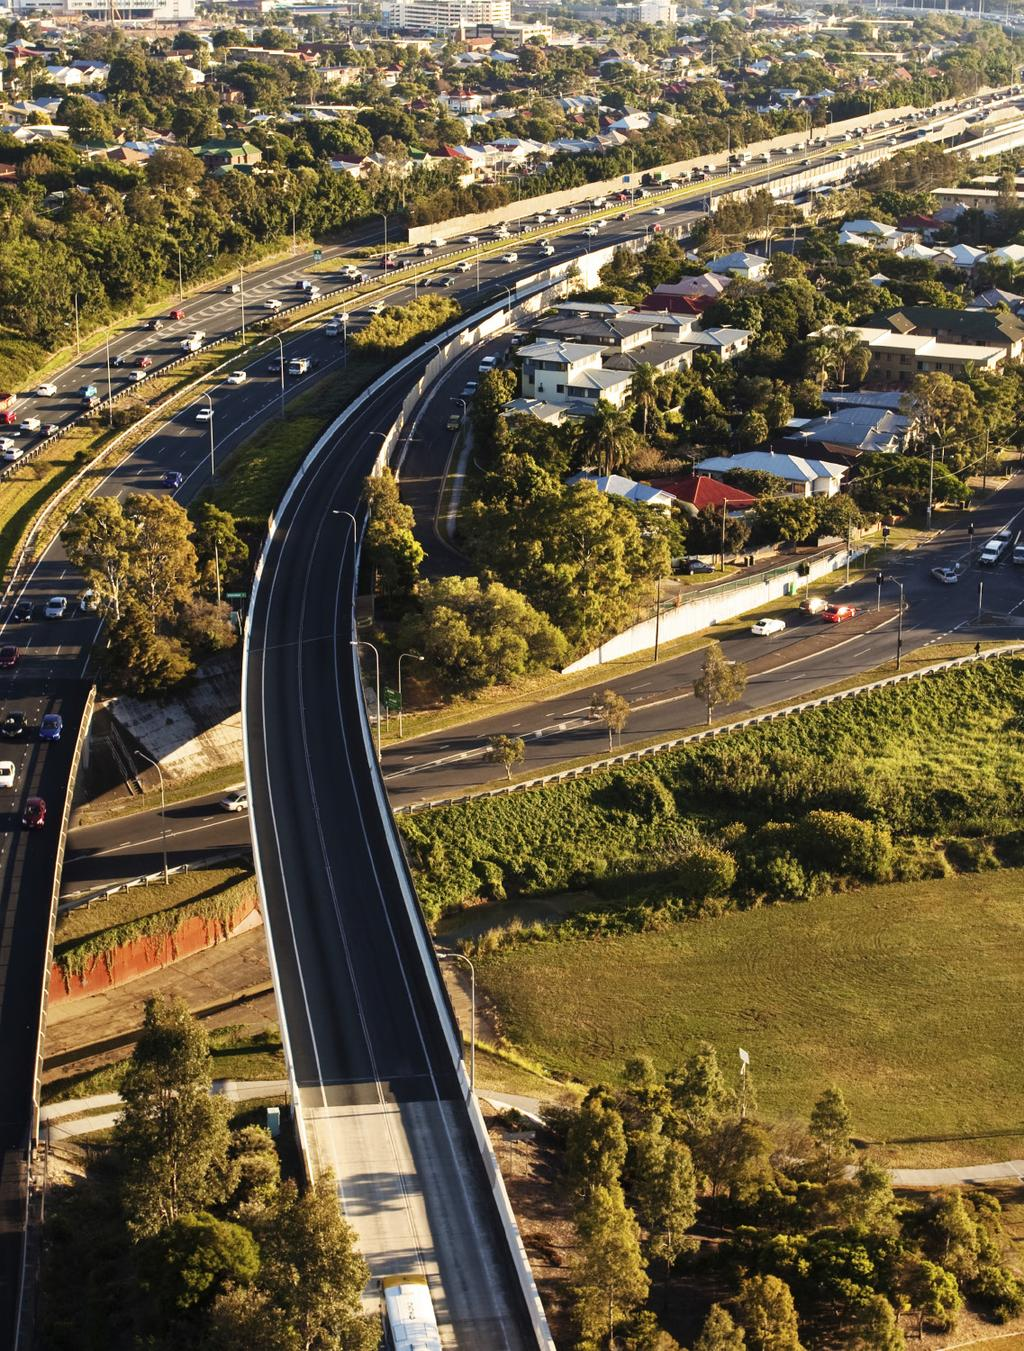 Investment Opportunity Investment surrounding framework includes the expansion and redevelopments of surrounding infrastructure such as Coomera Town Centre, Gold Coast Light Rail, Pacific